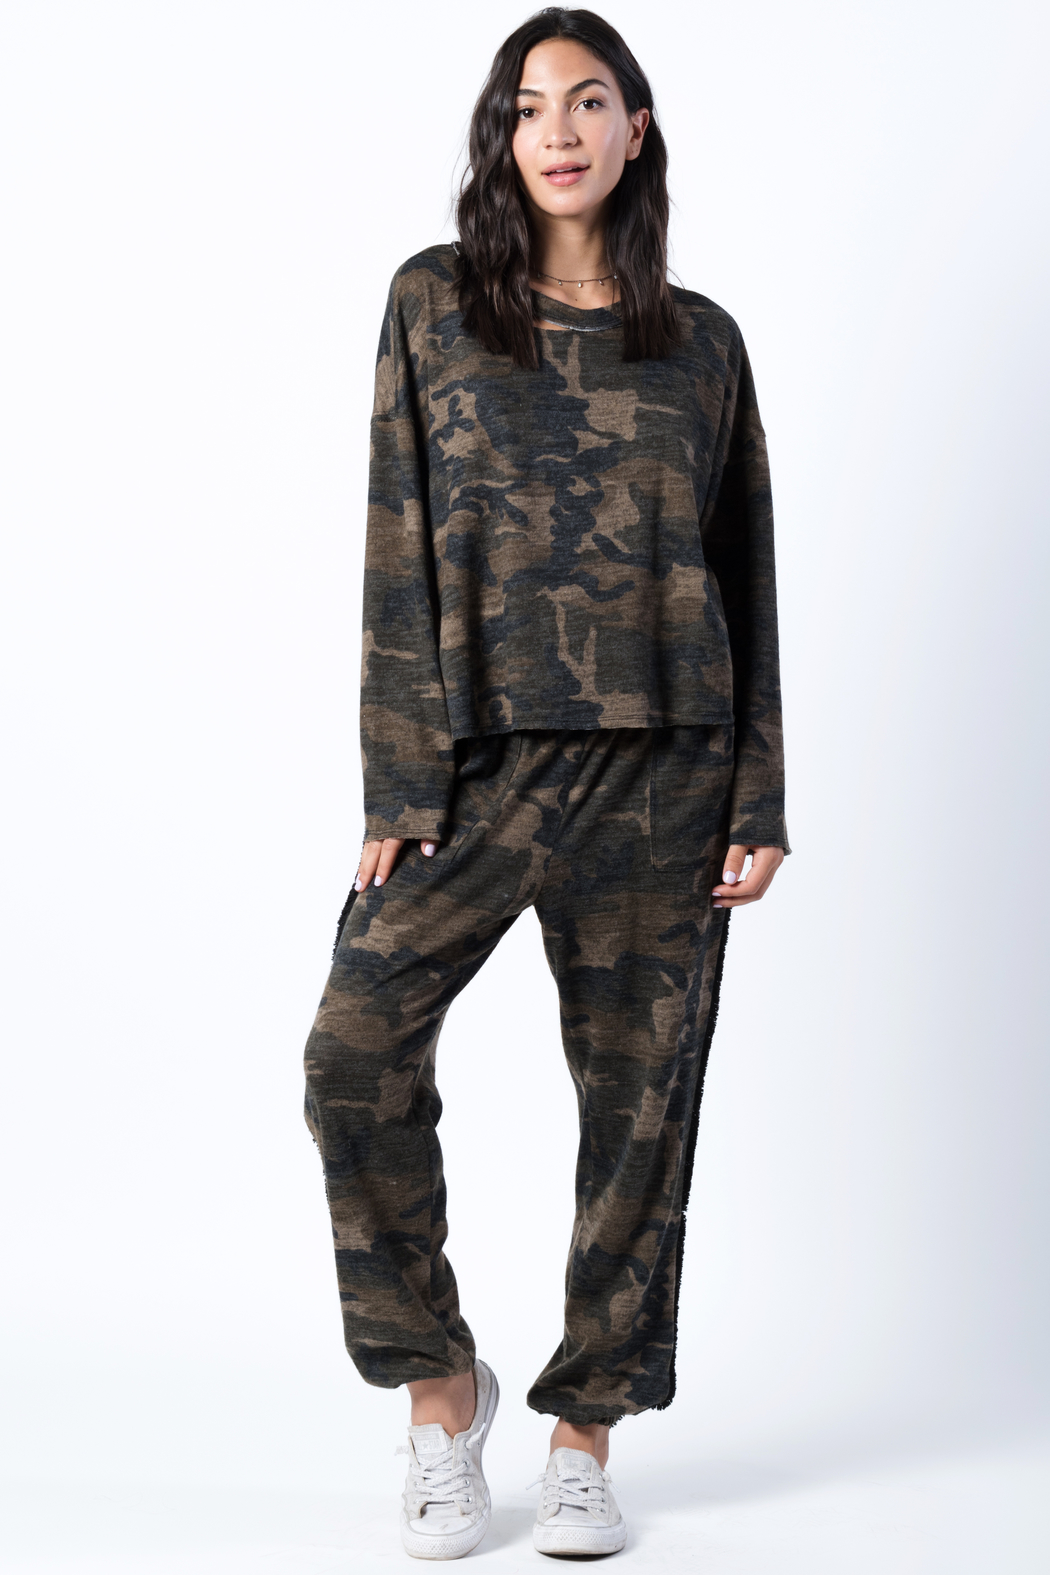 wanderlux  Camo Distressed Sweatshirt - Front Cropped Image